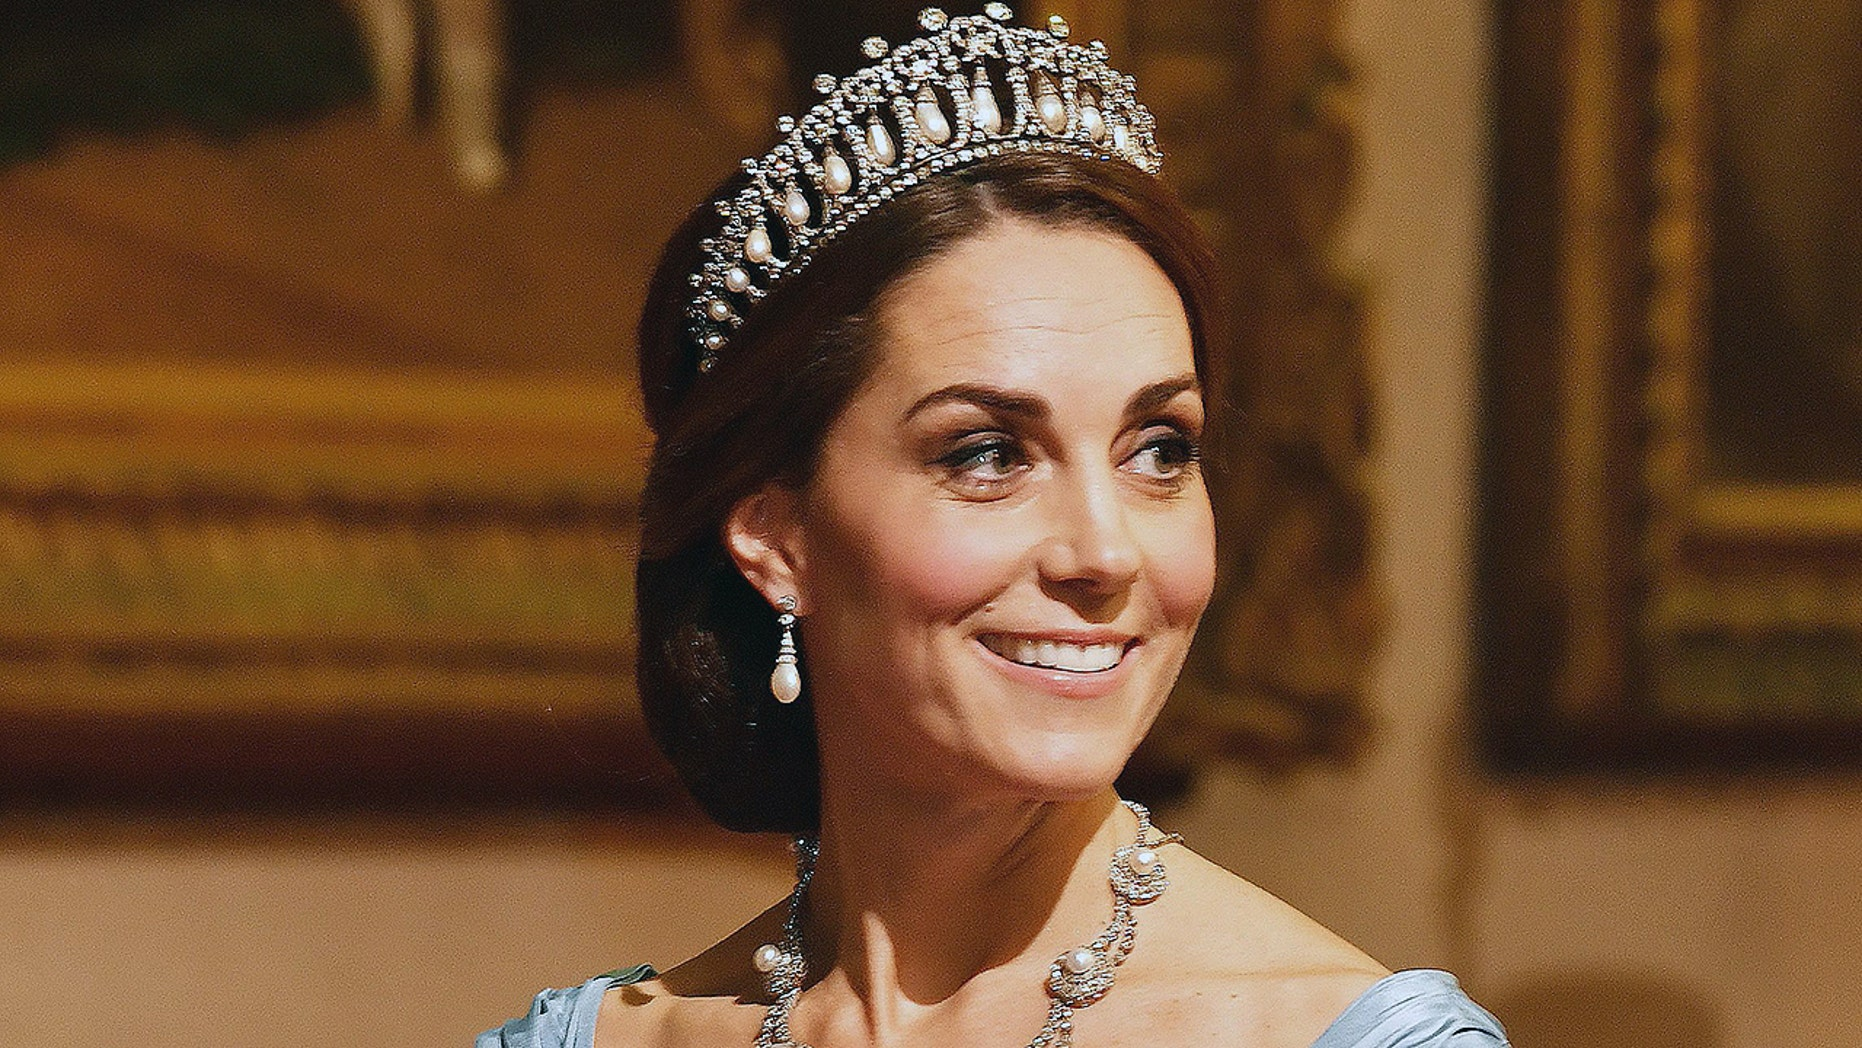 This is the crown Kate Middleton will wear when she becomes Queen